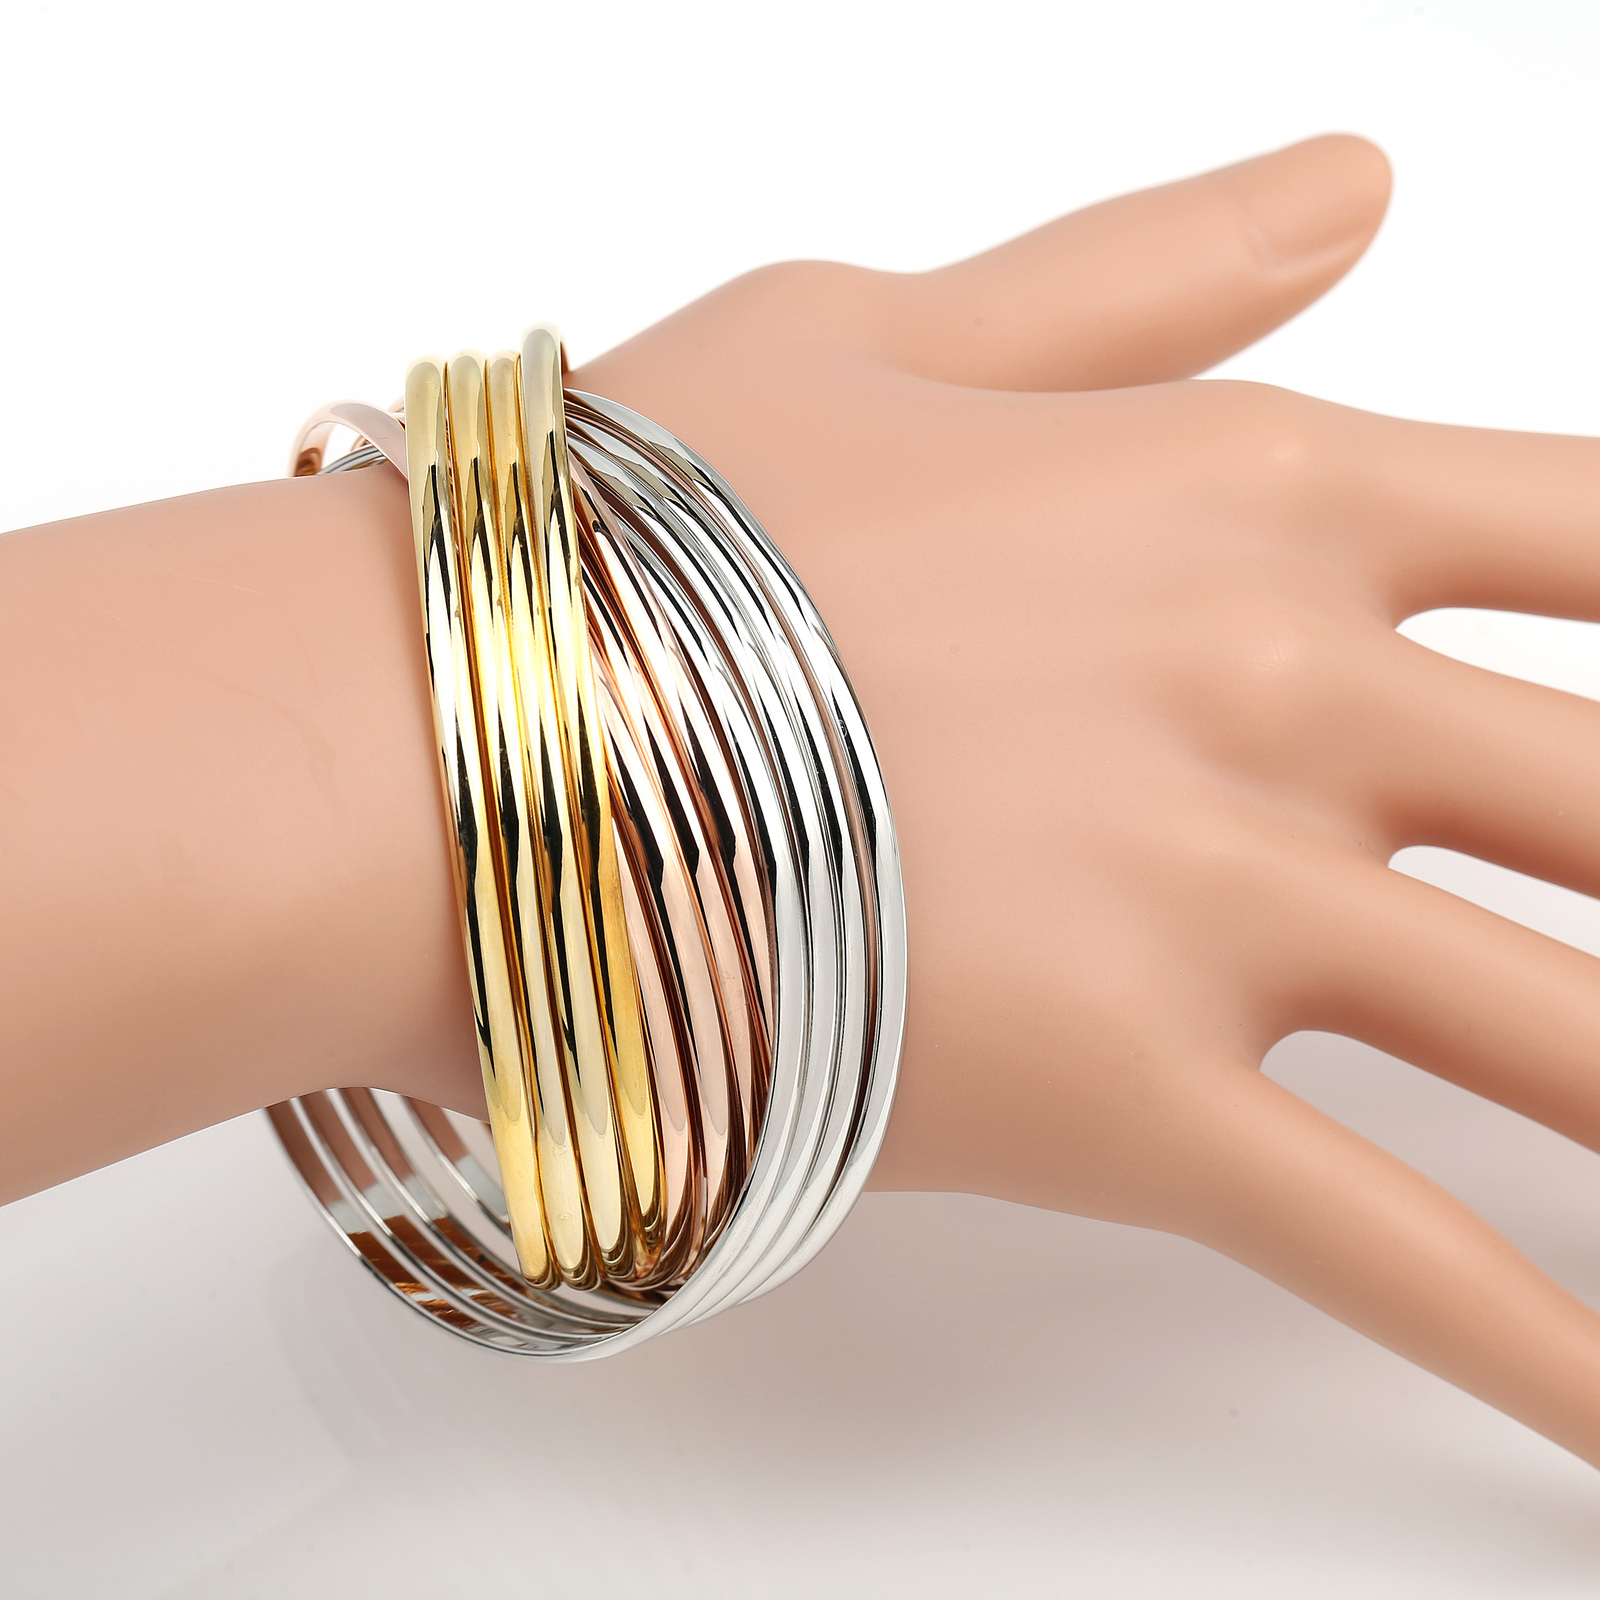 UE-Contemporary 12-Strand Tri-Color (Rose, Silver, Gold Tone) Bangle Bracelet